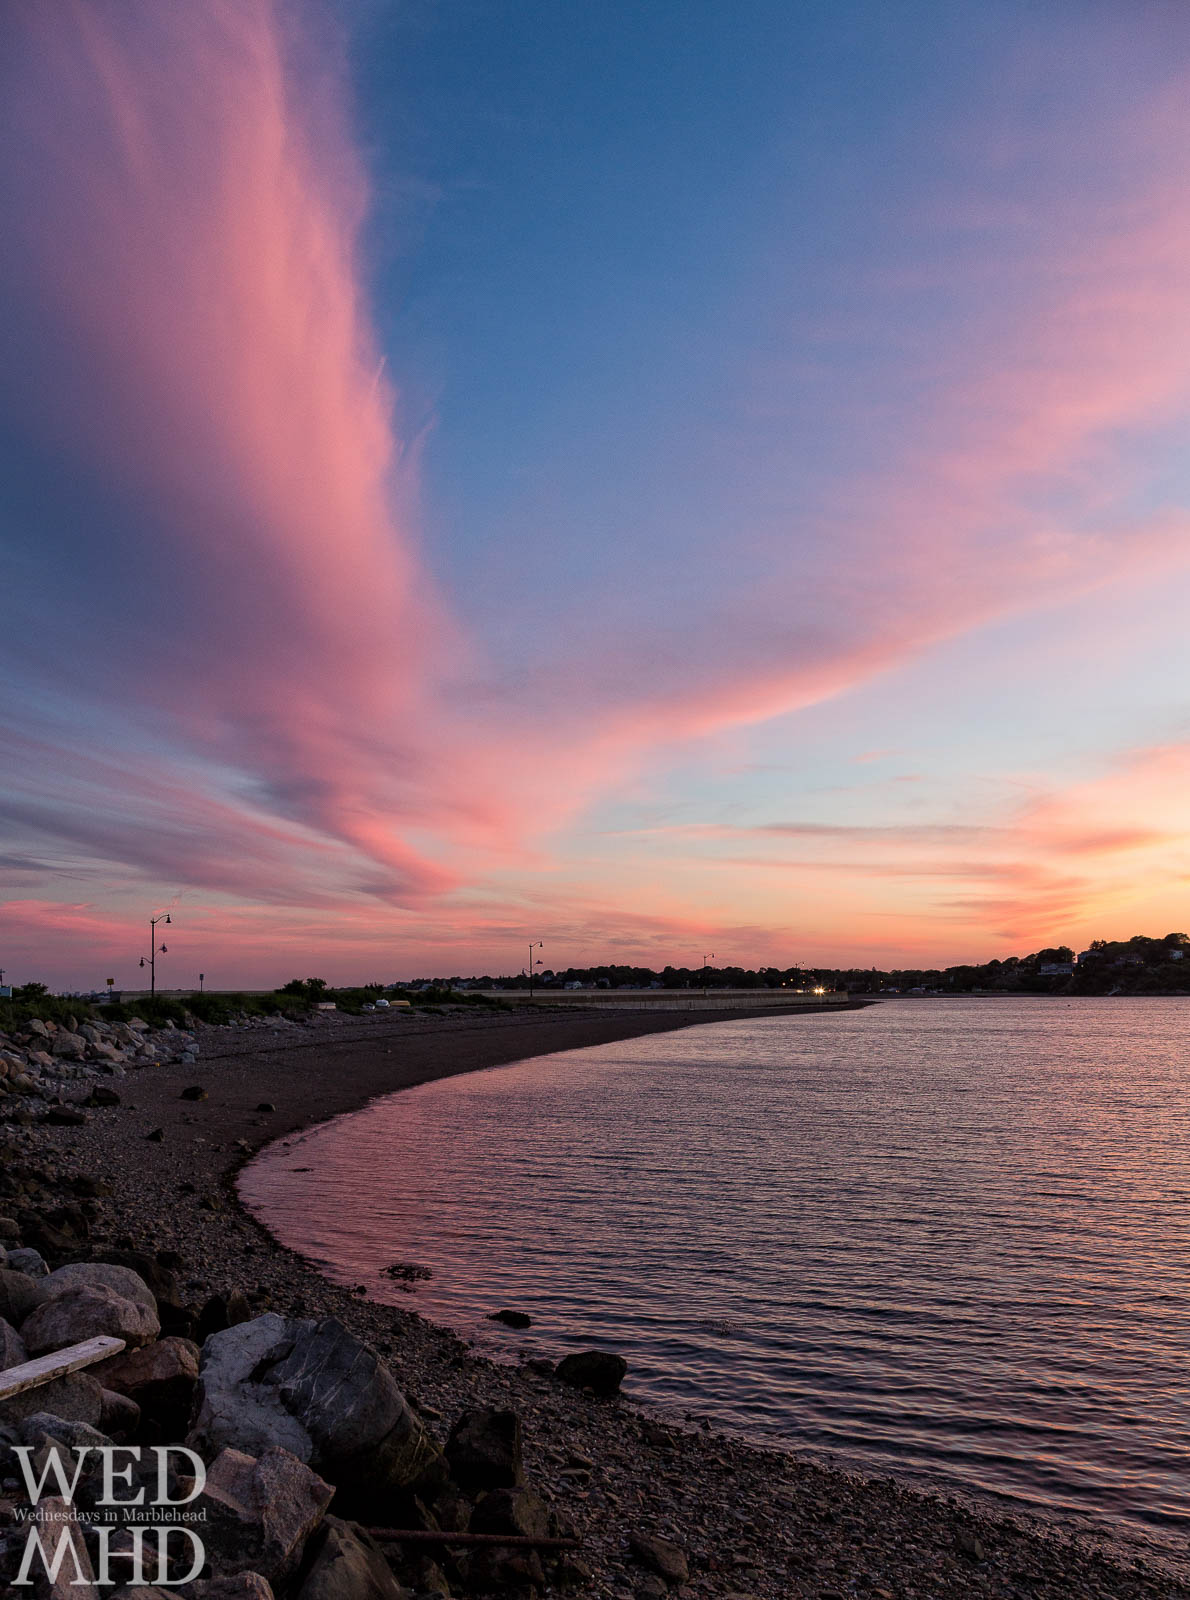 A large clouds reflects sunset light to form a pink sky over Riverhead Beach